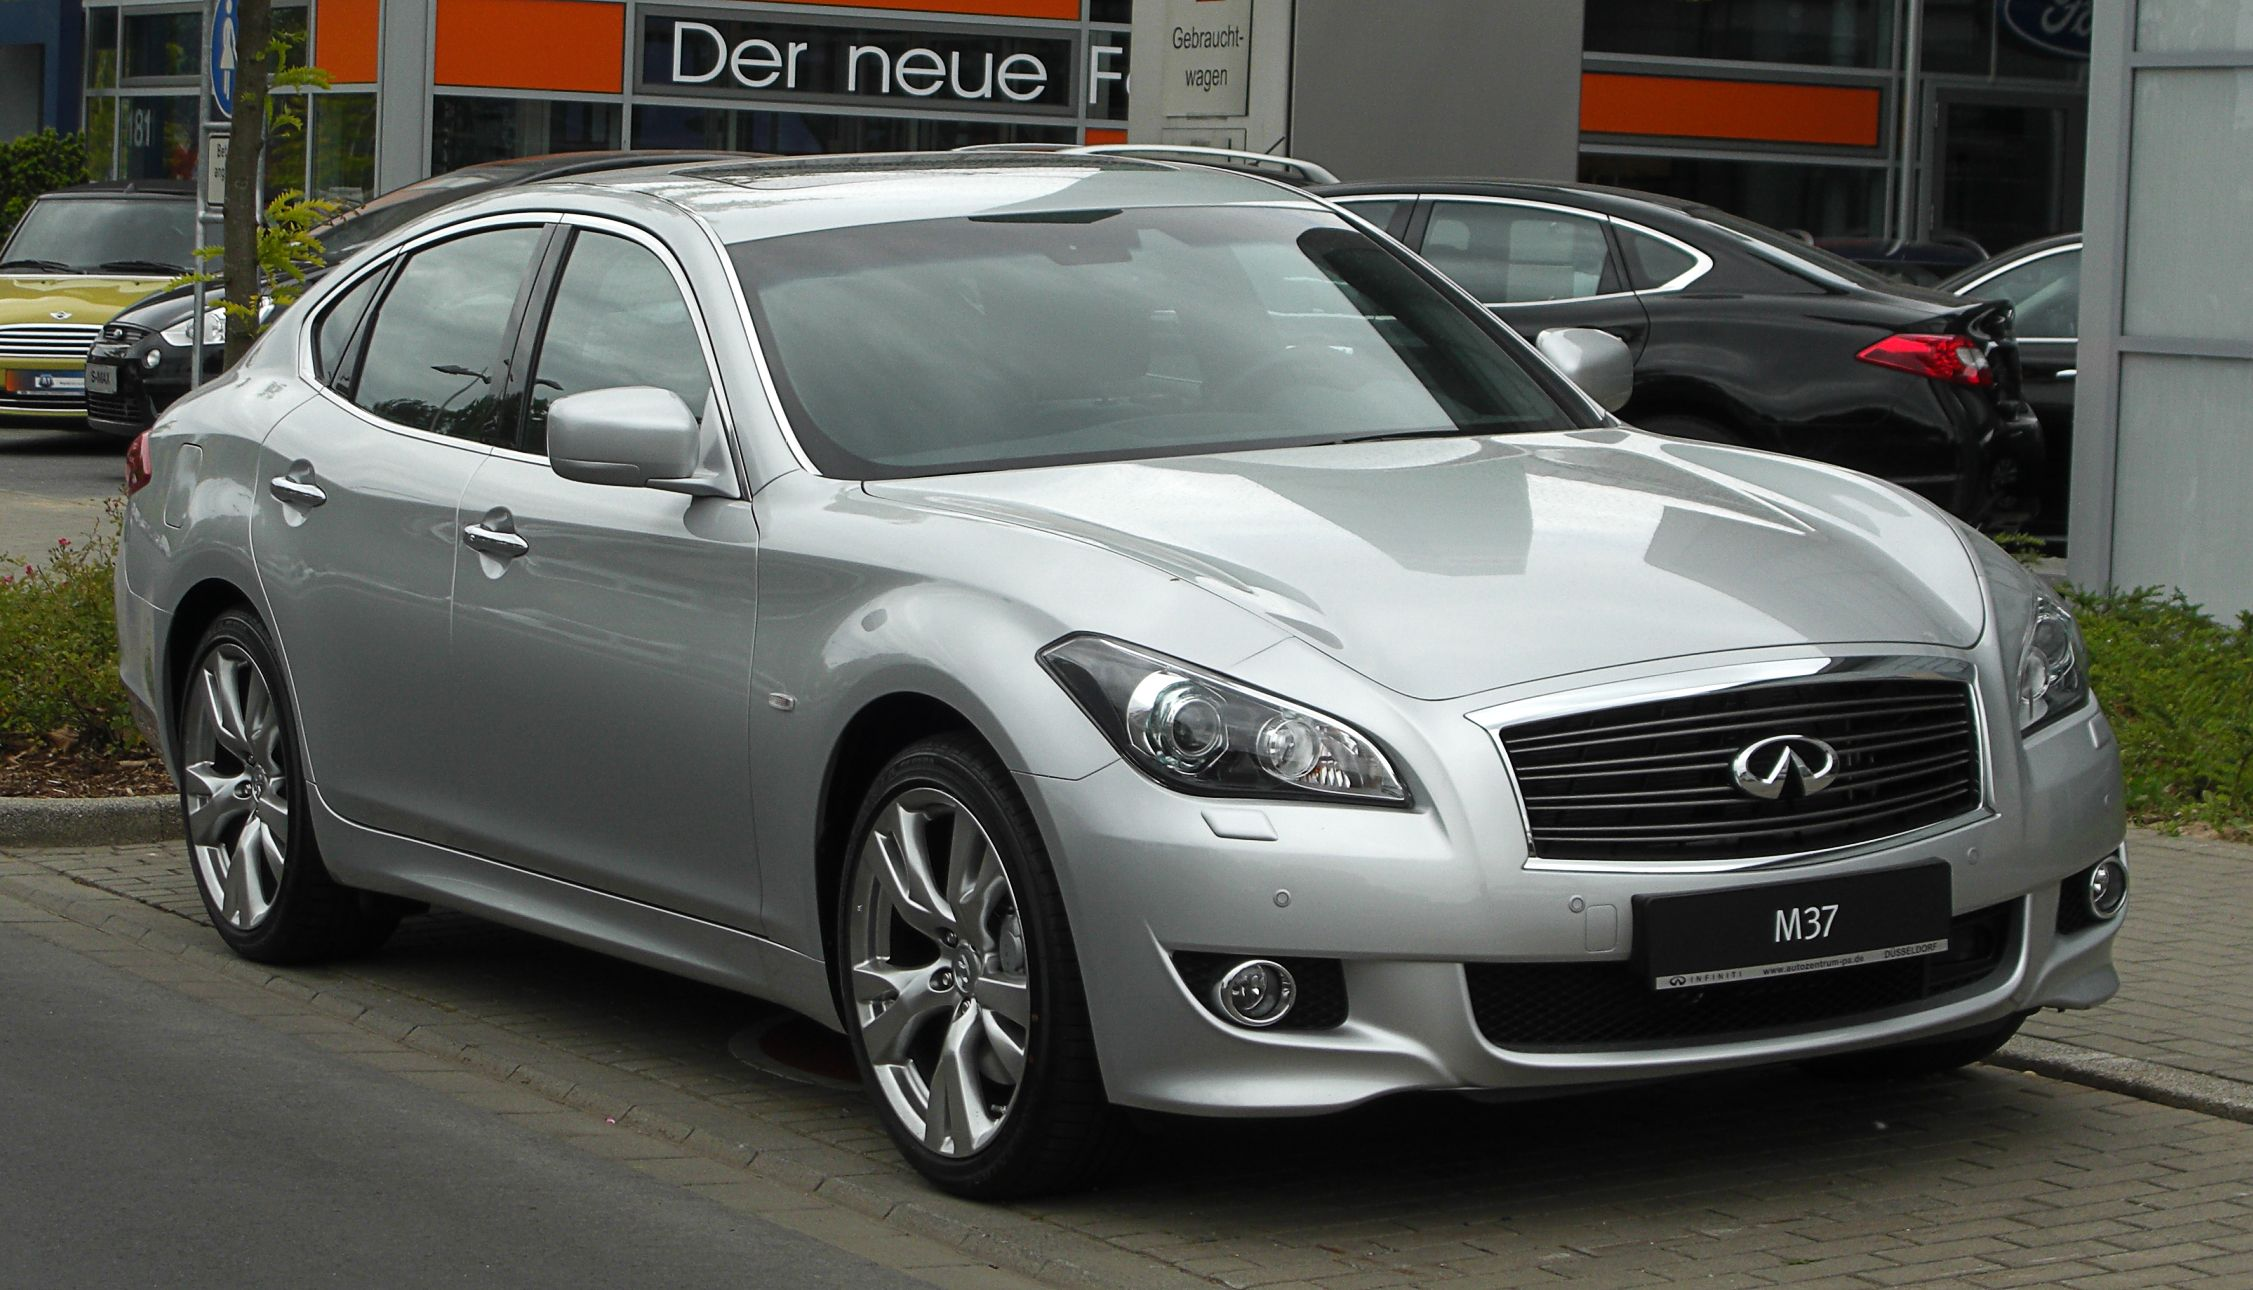 infiniti-1-japoneses-rockinchiclifestyle